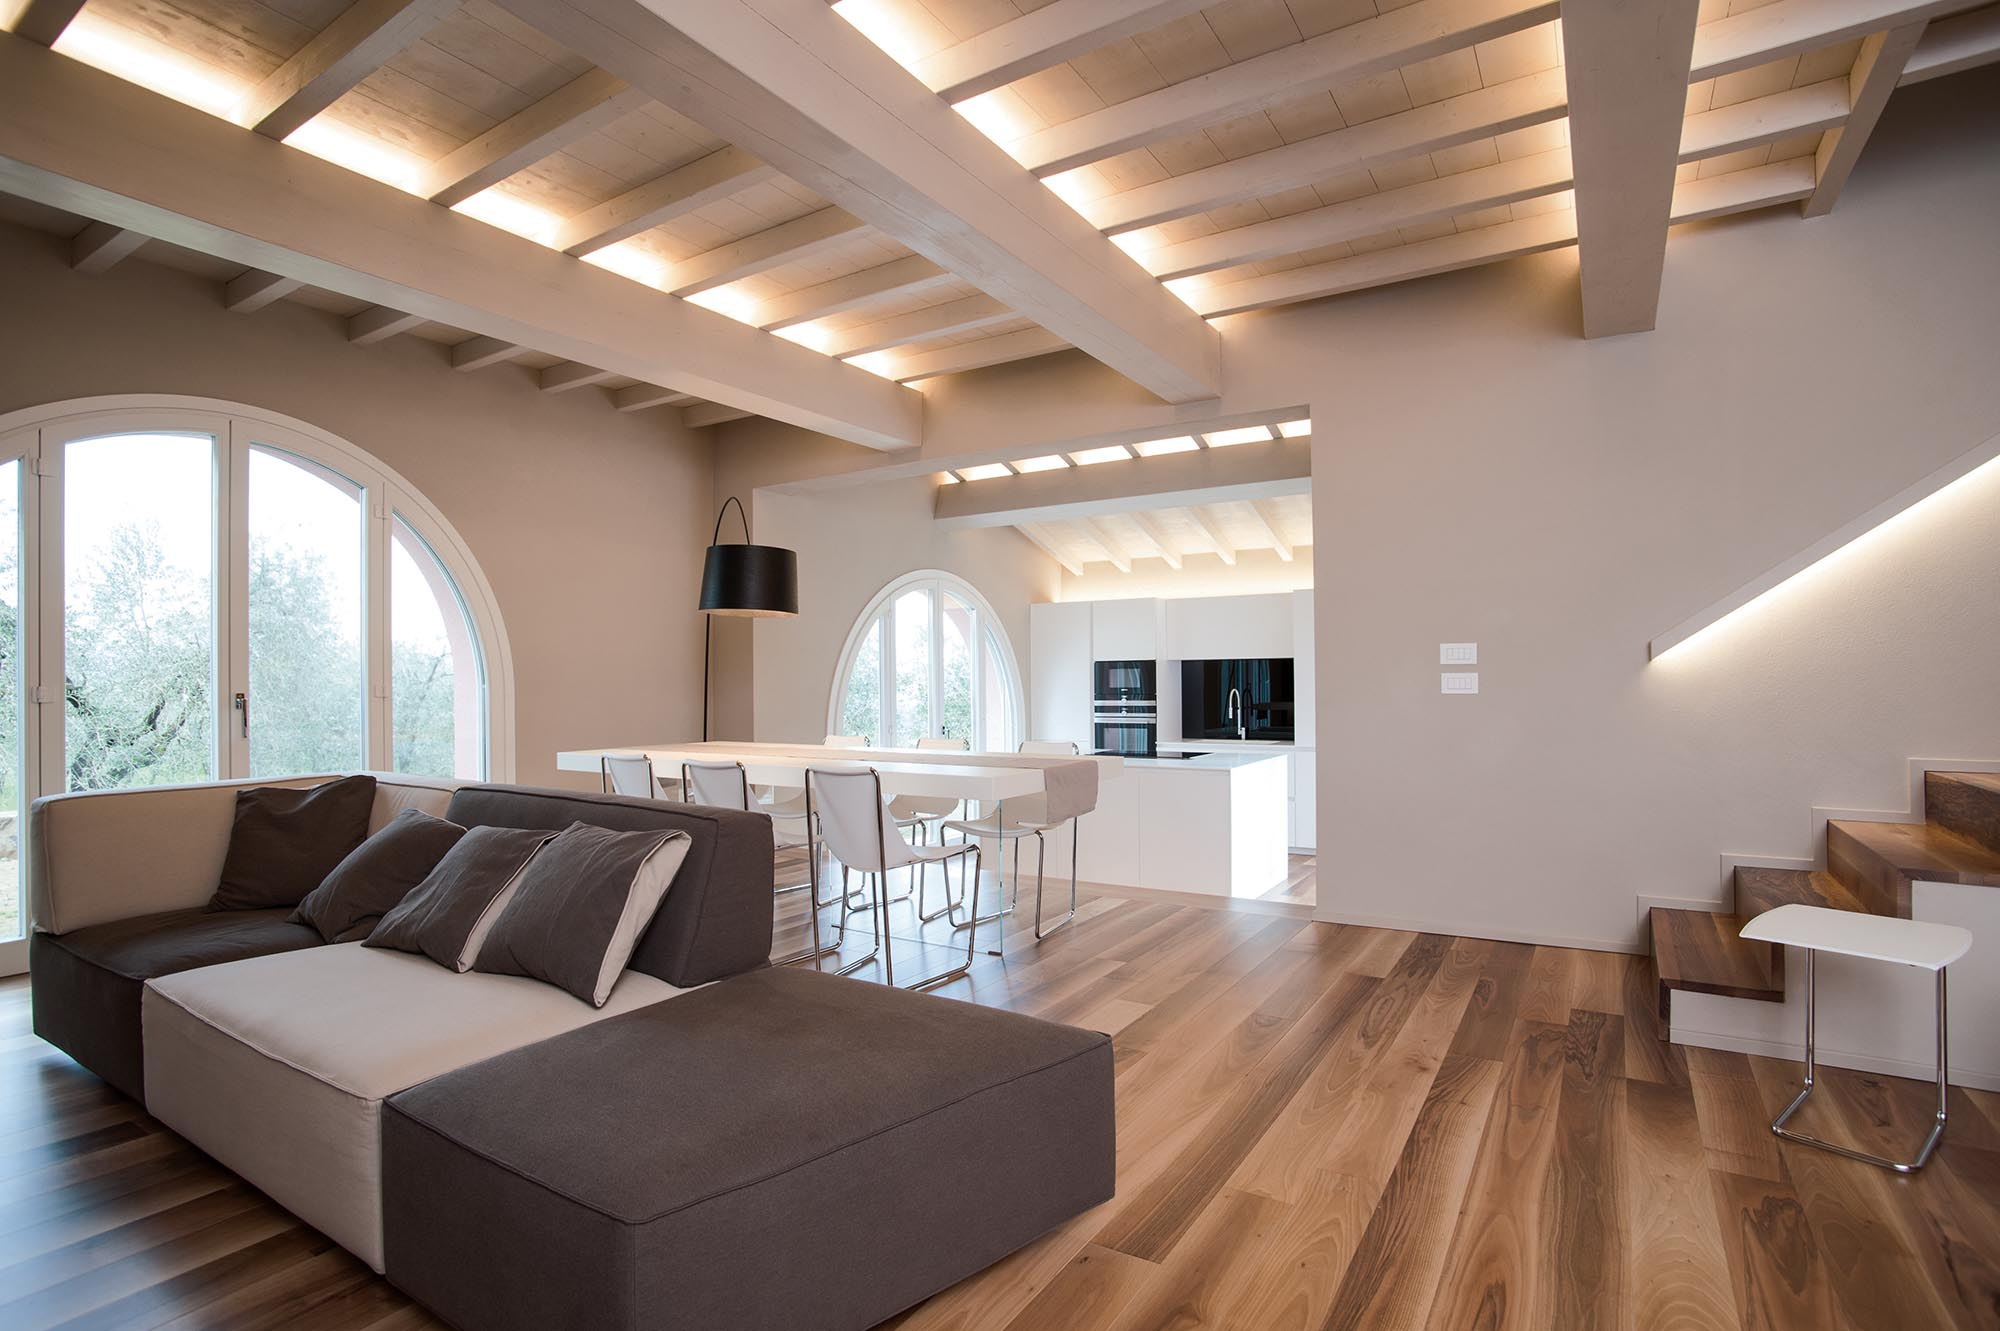 Minimal interior of villa rachele biancalani for Siti di interior design